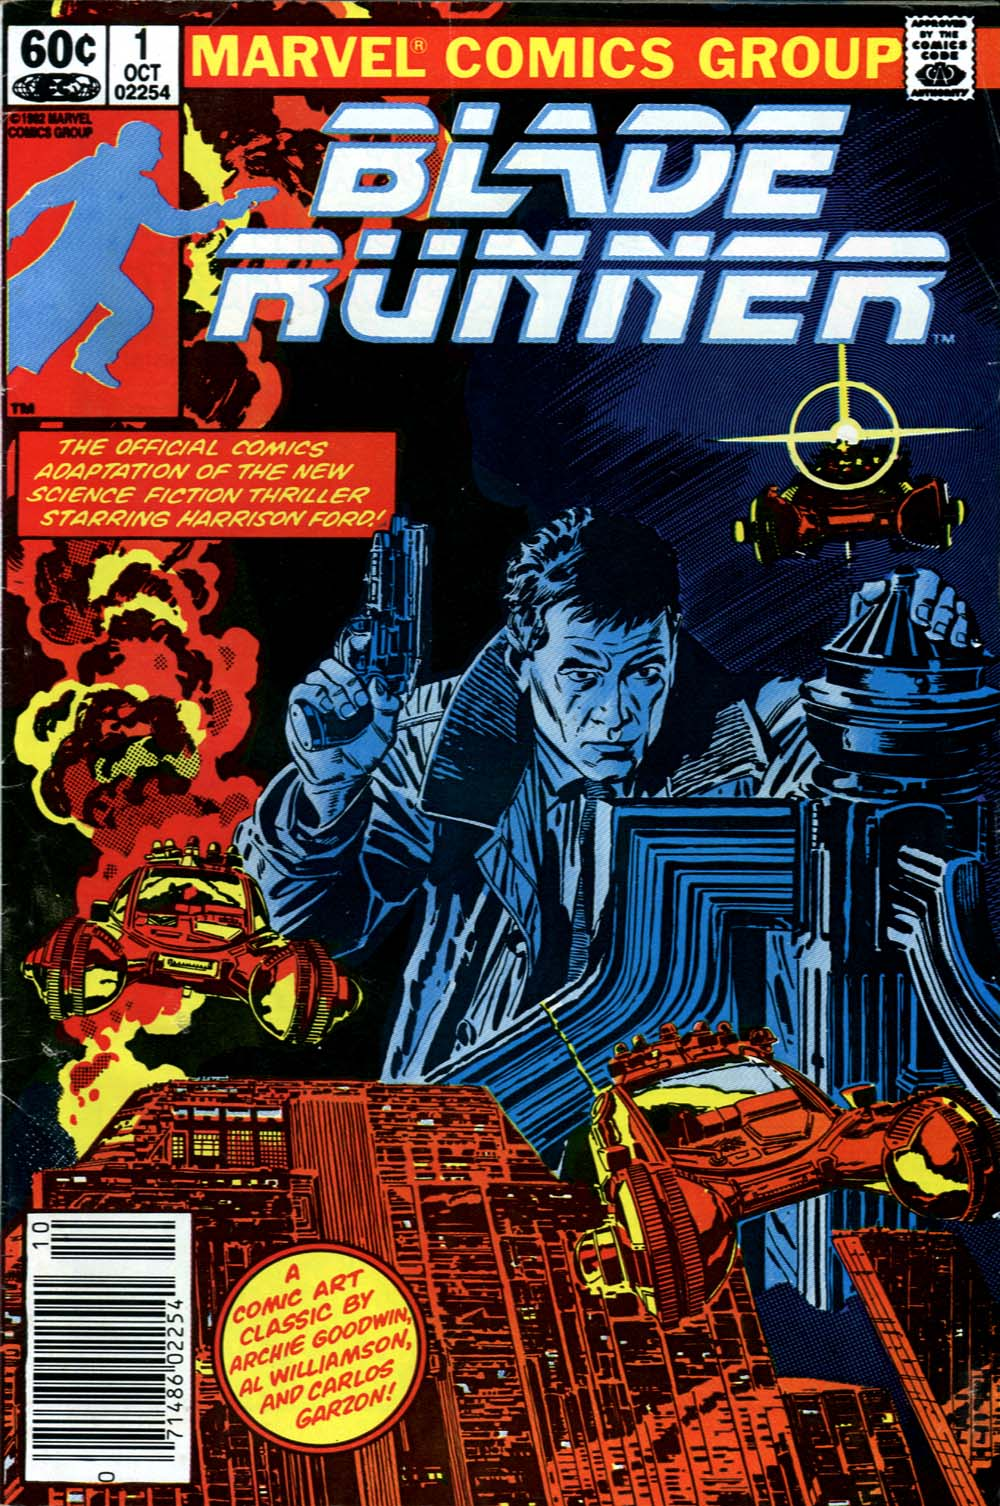 http://images.wikia.com/marveldatabase/images/9/95/Blade_Runner_Vol_1_1.jpg